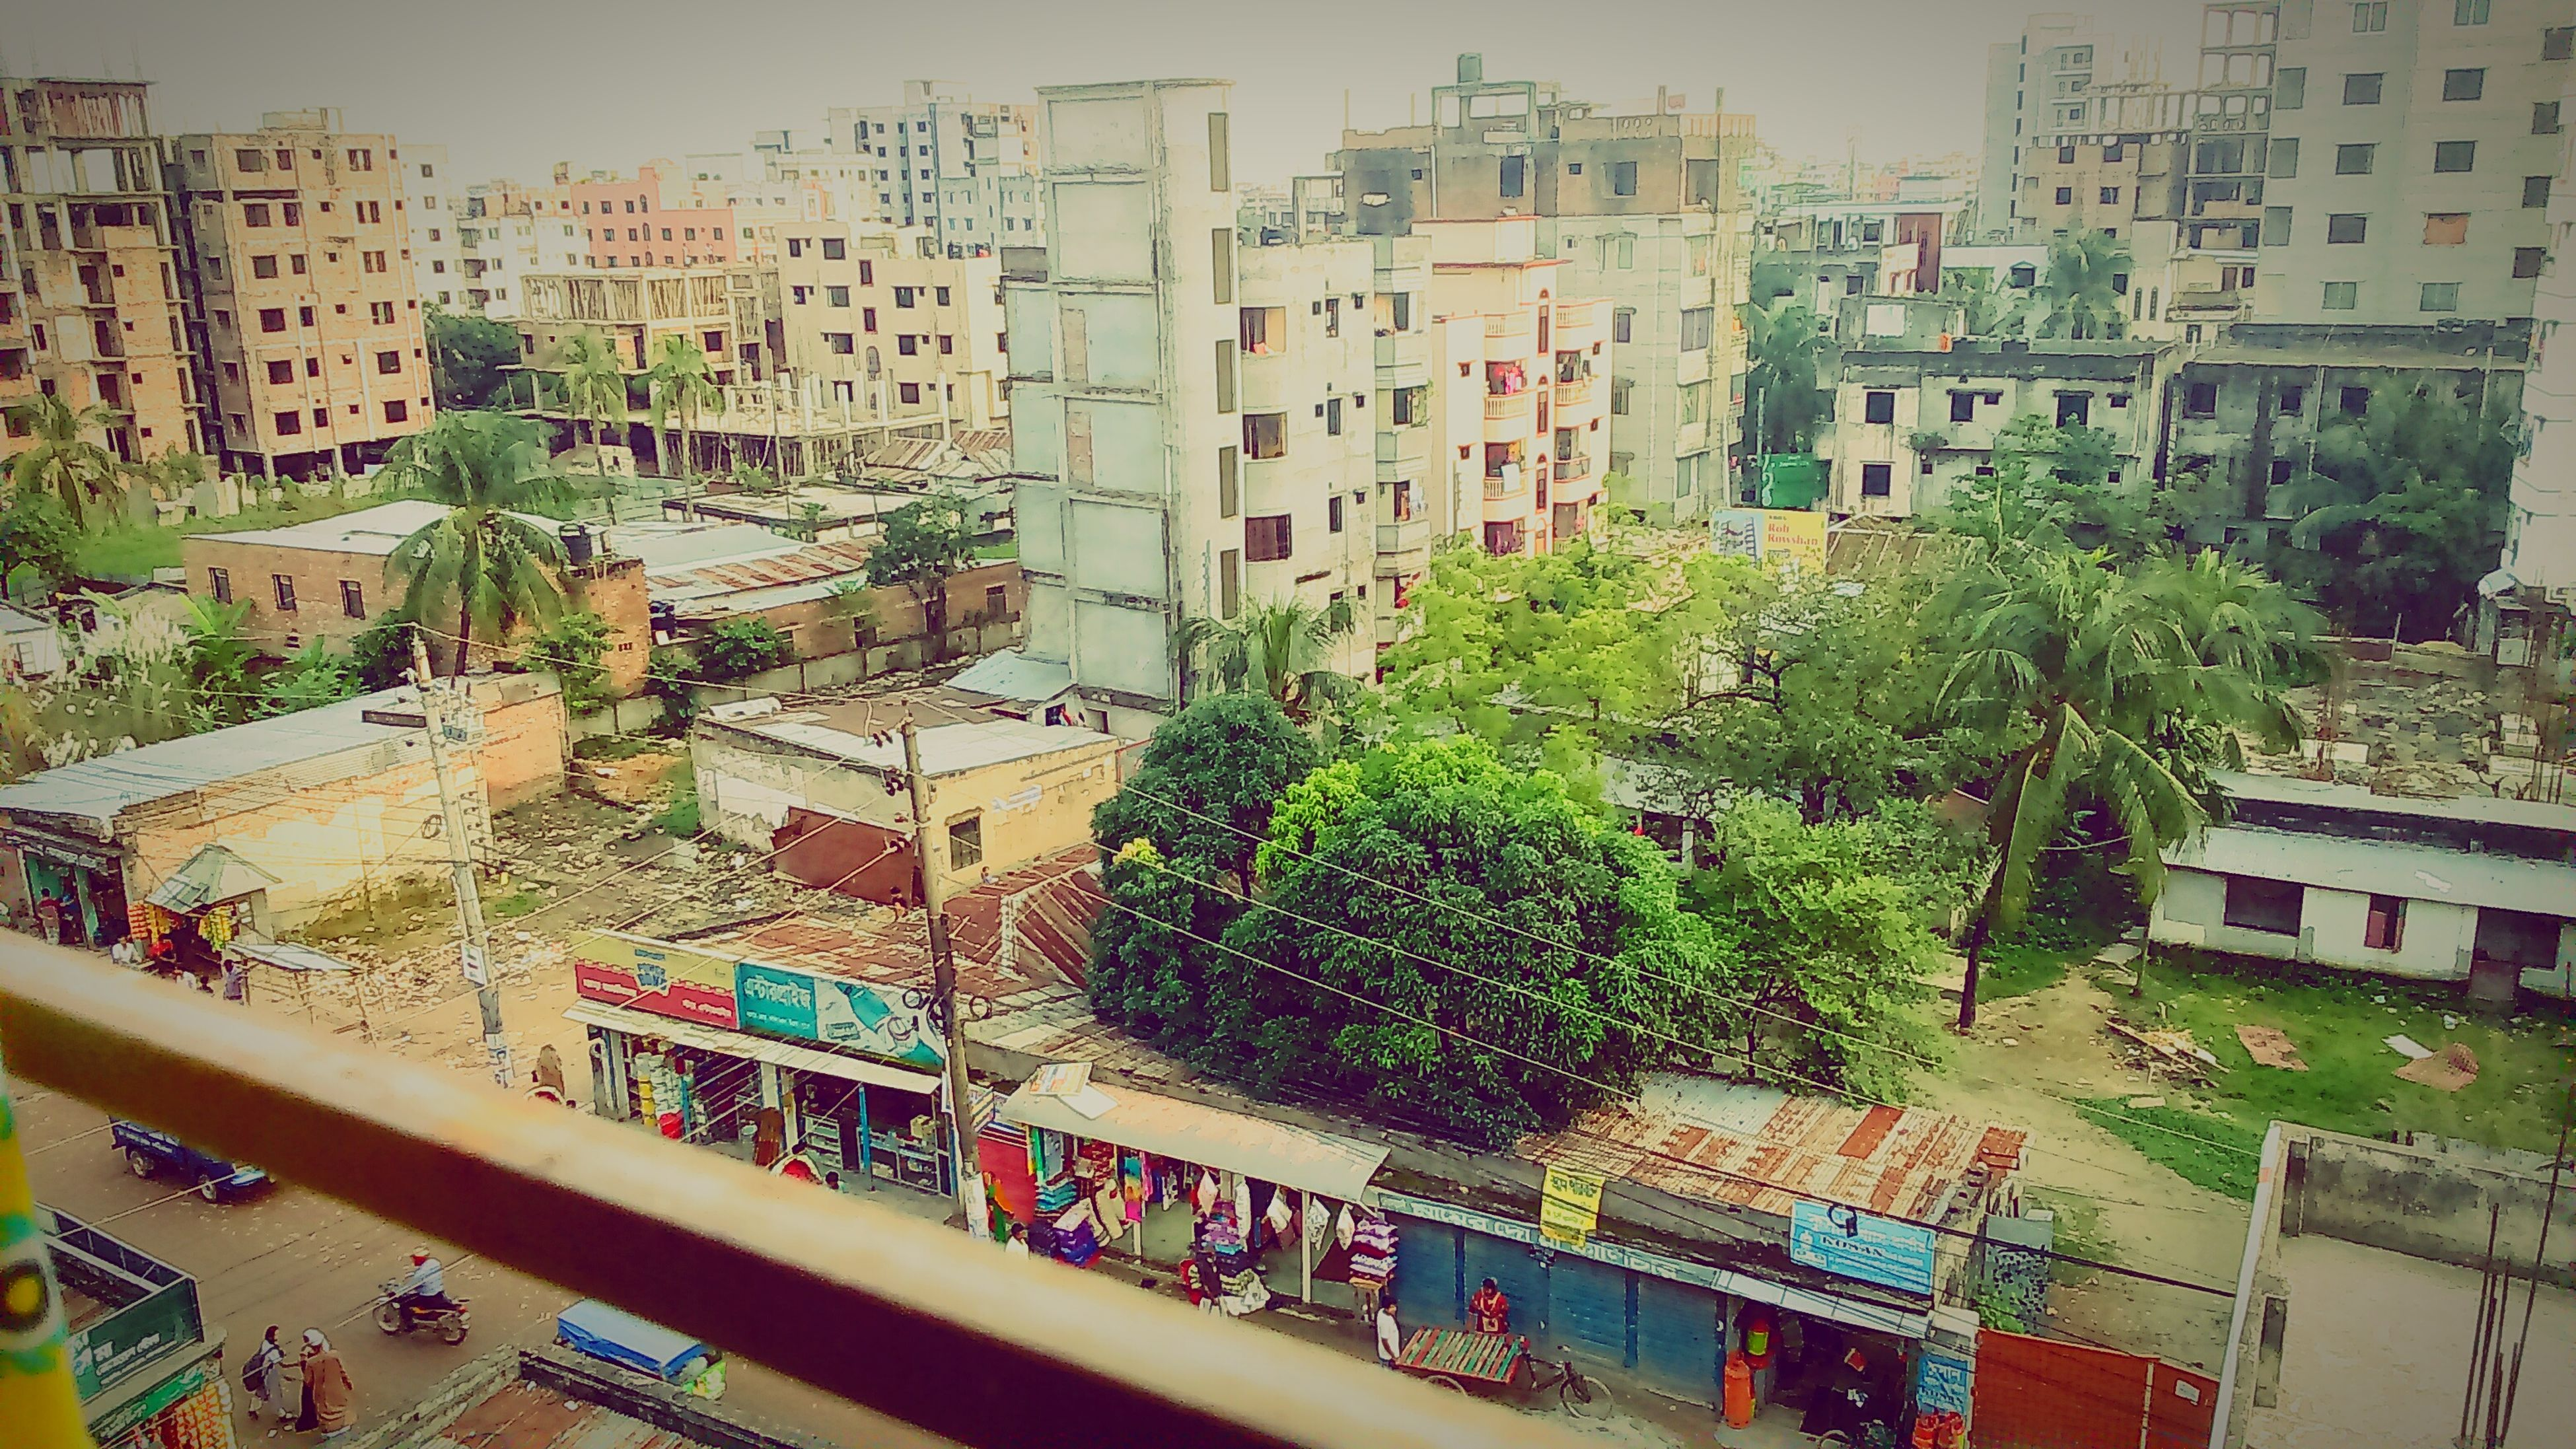 Grill_SiDe_View, BuSY_Life Evening_moments✌😉☺🏢 First Eyeem Photo